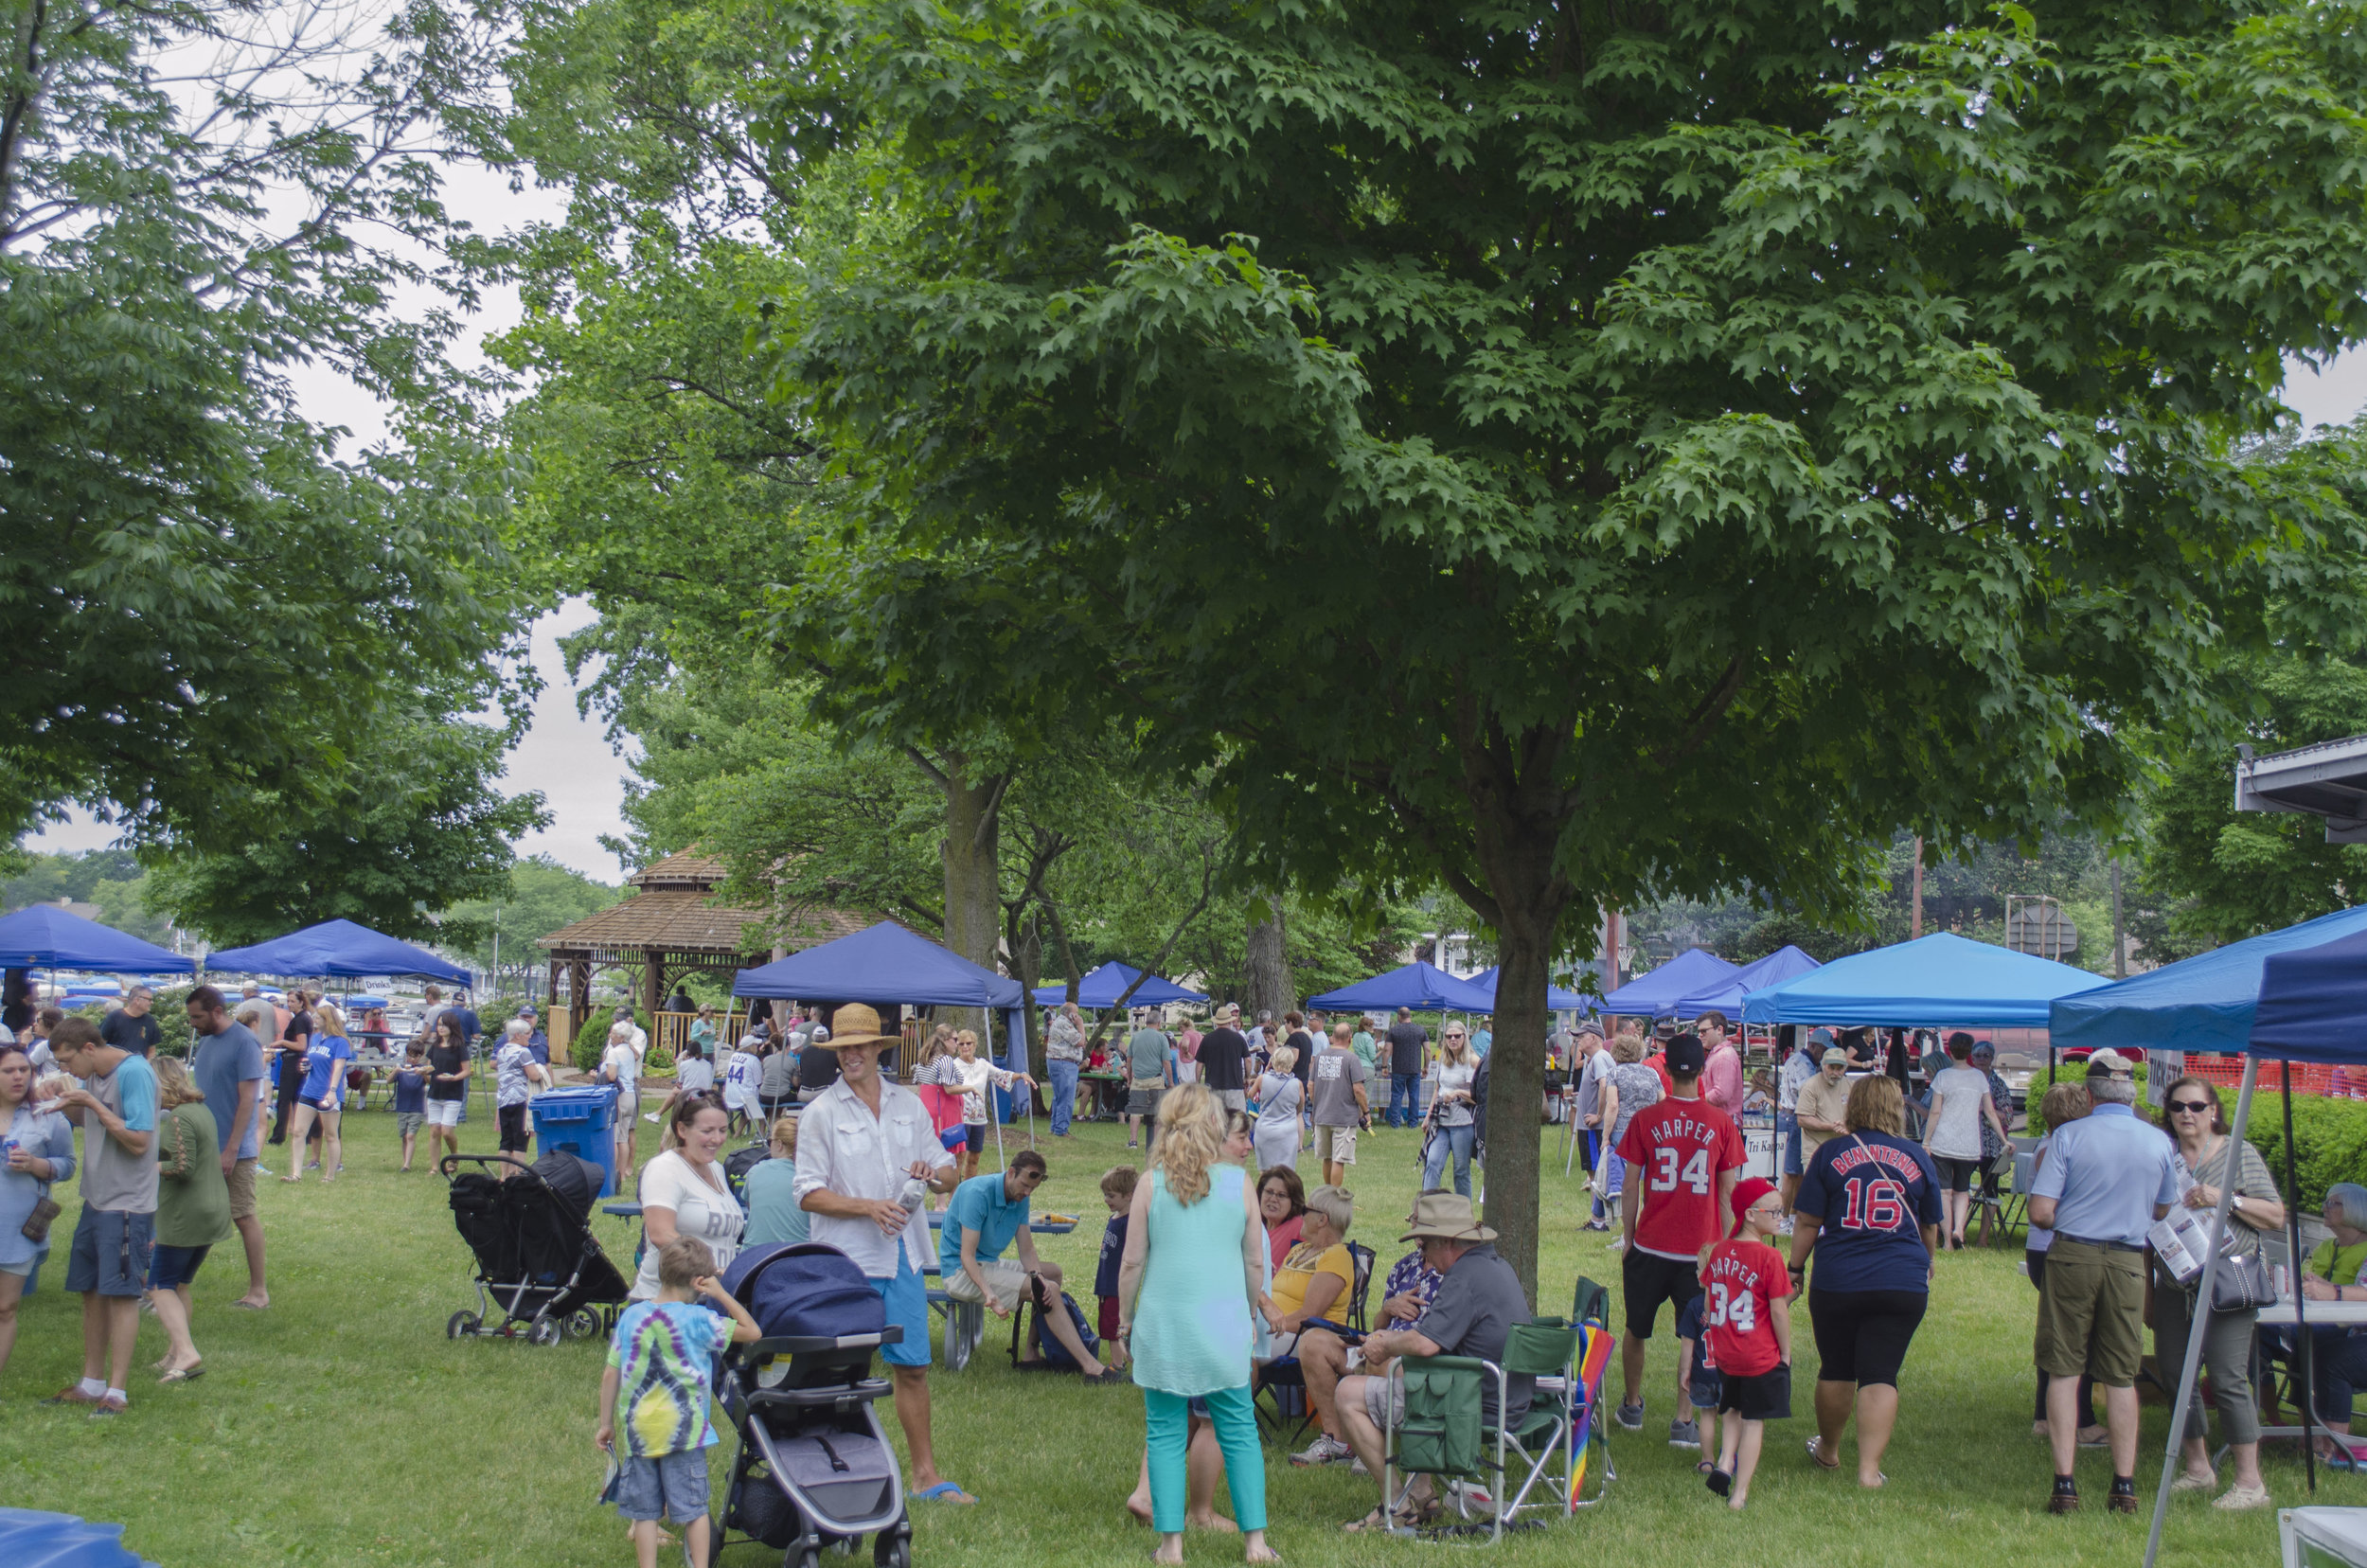 Attendees gather in the town park Saturday, June 9 for Taste of Culver. Local businesses and restaurants had booths set up with food and drinks.